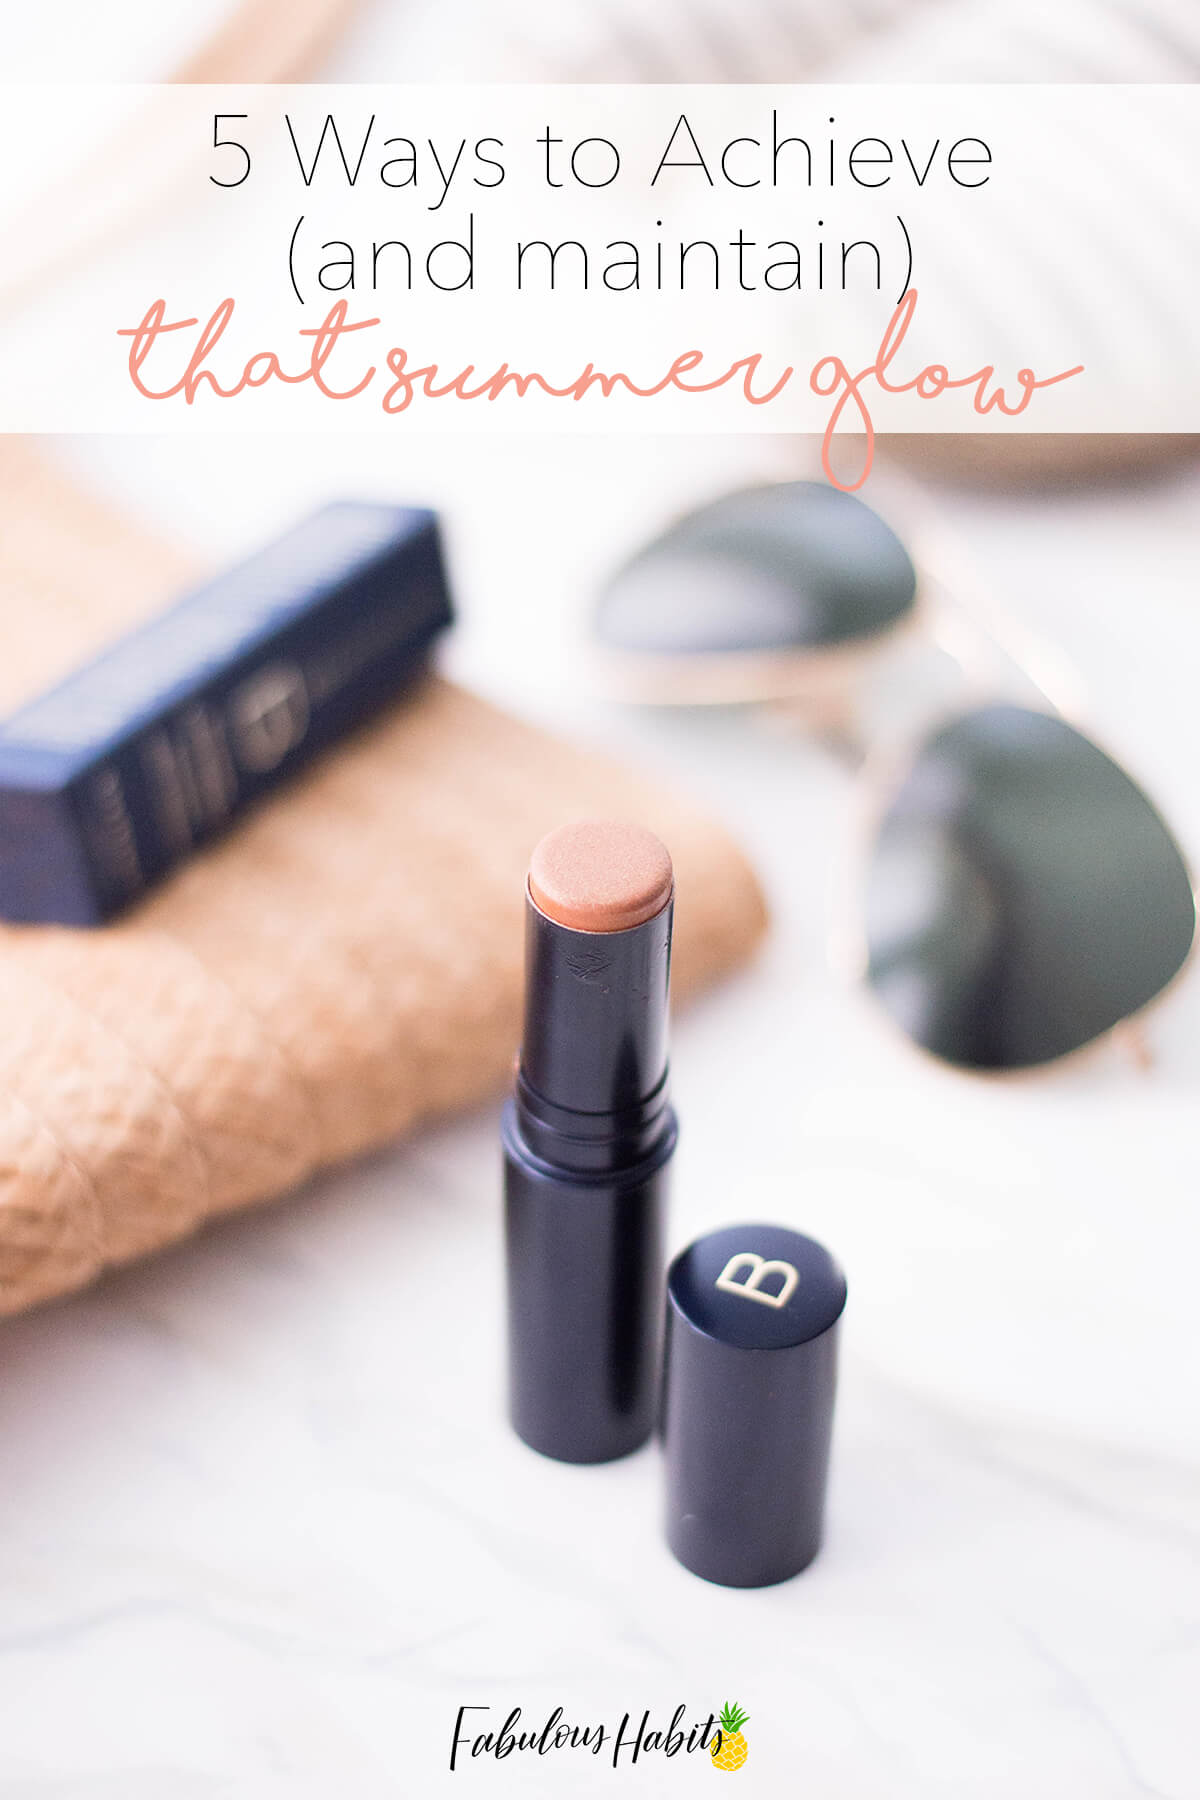 Maintaining a summer glow can be easy and safe with Beautycounter